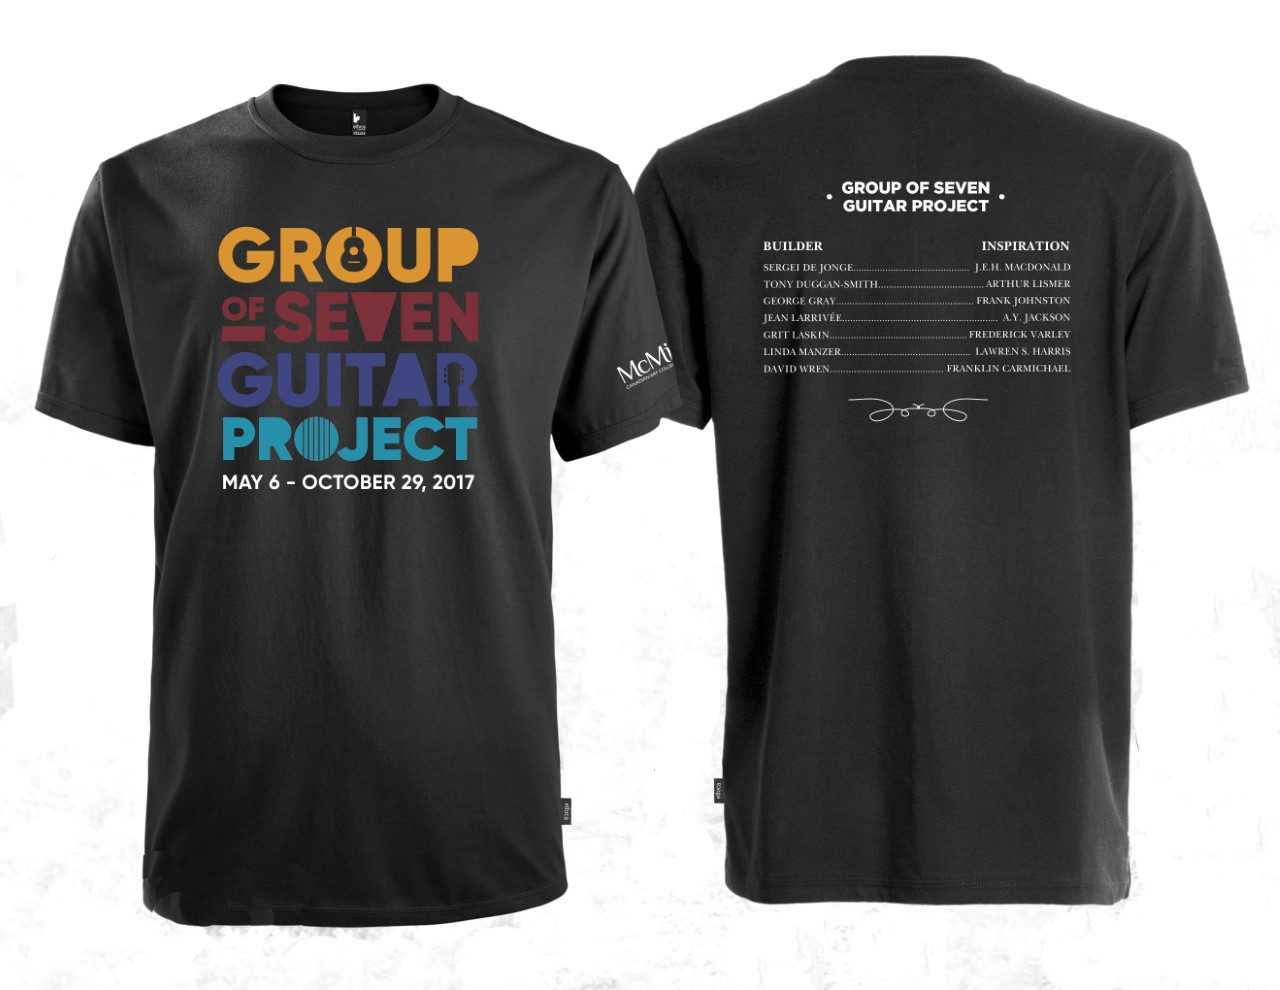 two black t-shirts with Guitar Project information printed on them